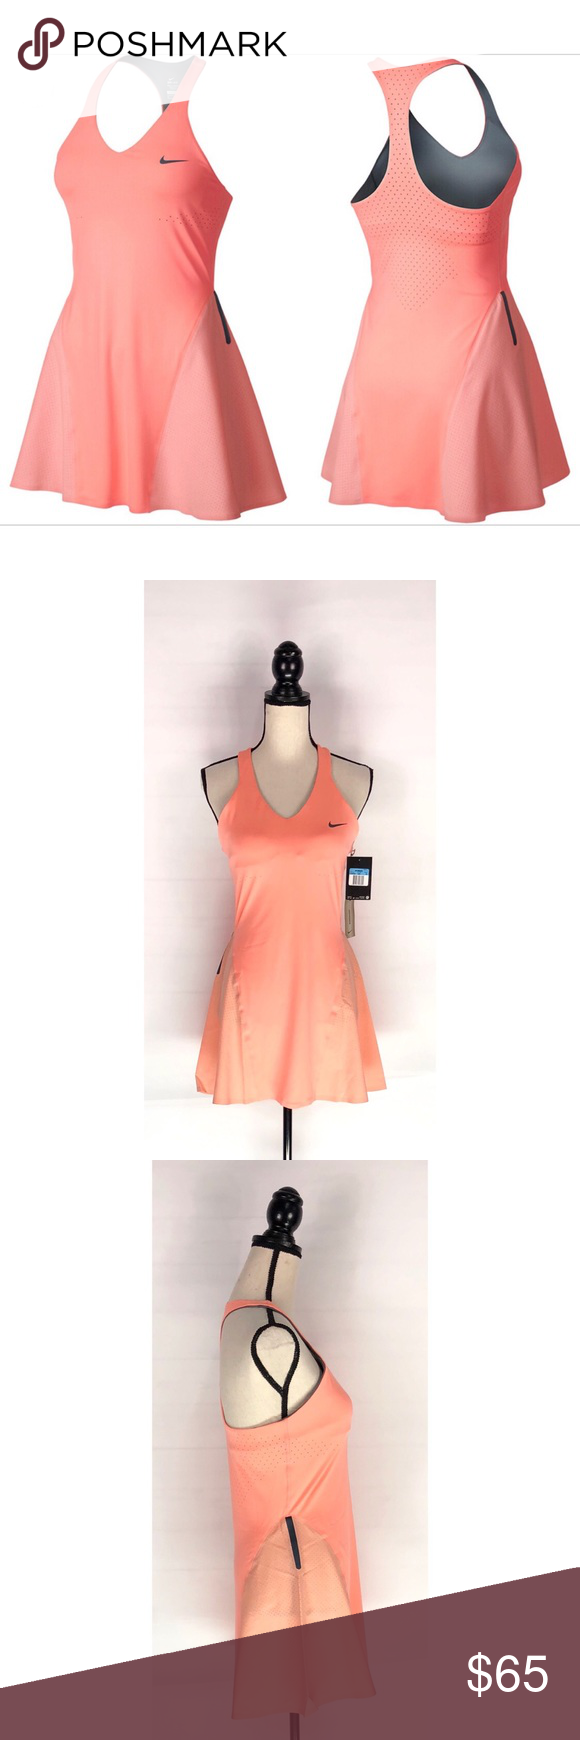 NIKE Maria Sharapova Tennis Dress Atomic Pink M NWT NIKE Maria Sharapova Premier  Tennis Dress Atomic